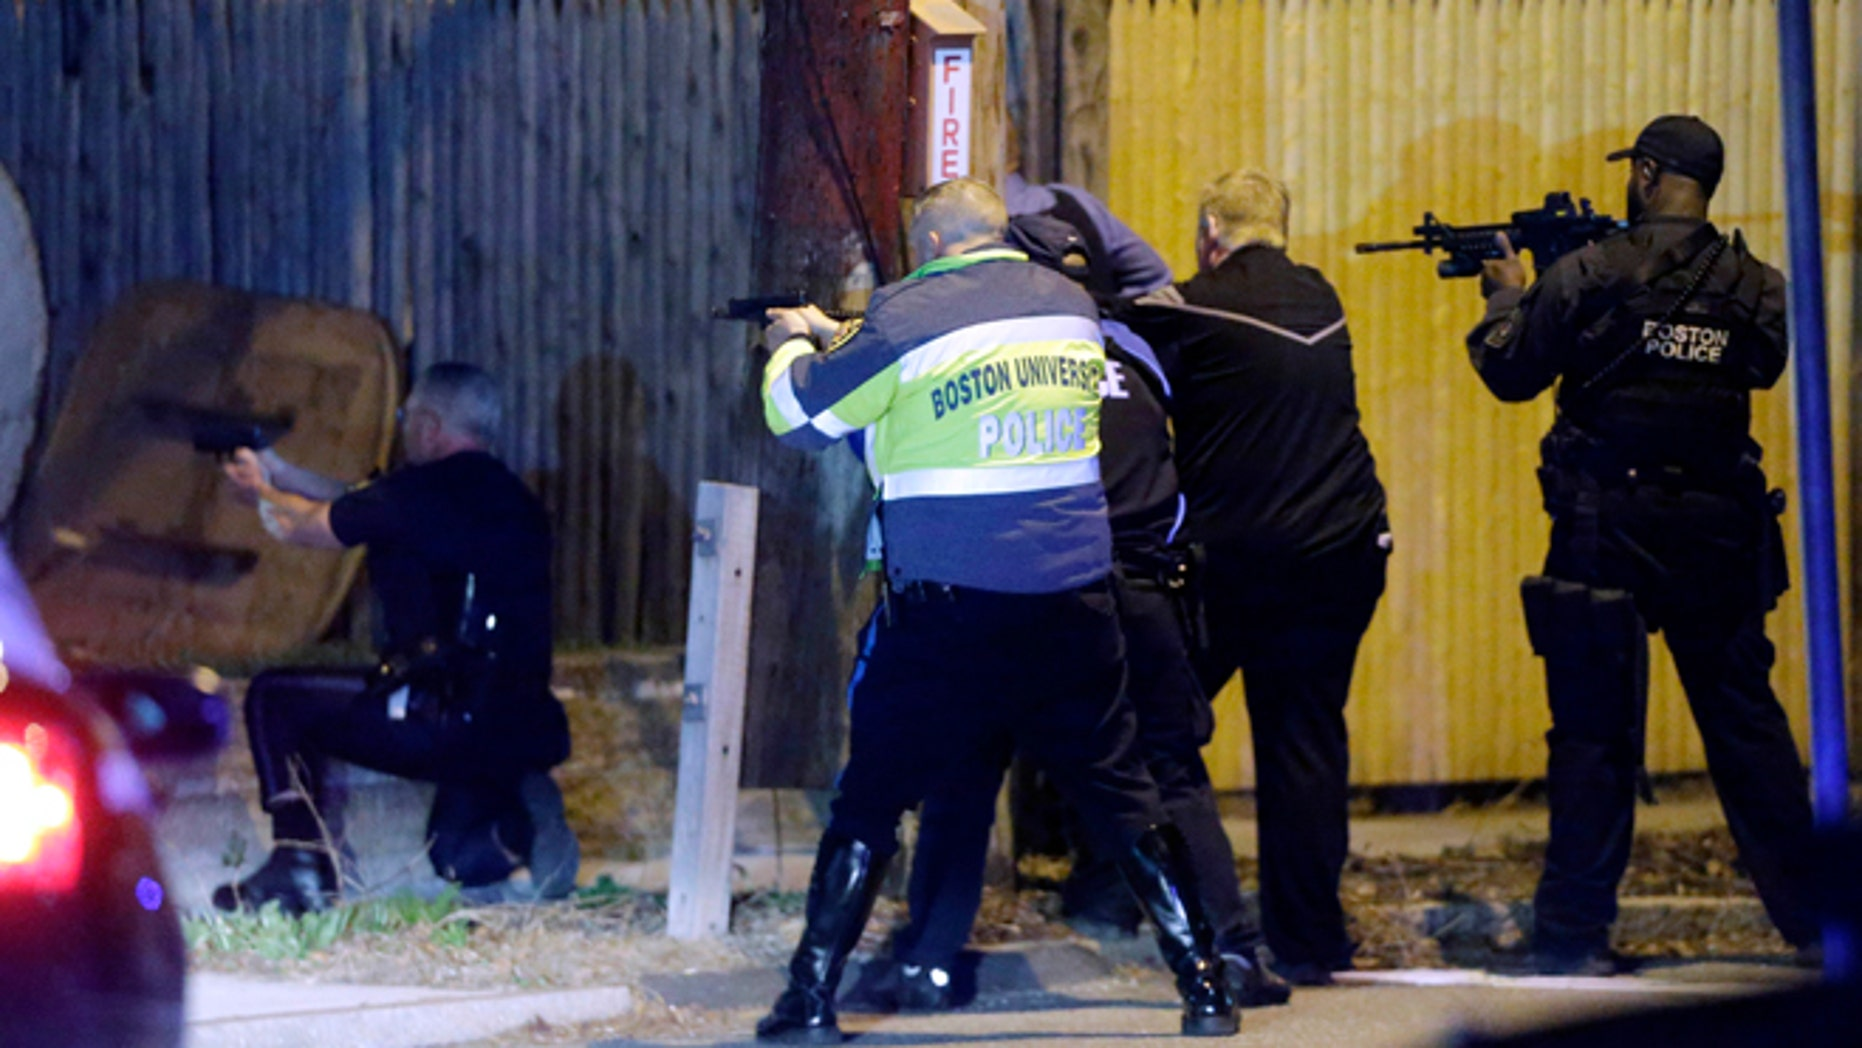 April 19, 2013. Police officers aim their weapons in a Watertown, Mass., neighborhood during a hunt for the Boston Marathon bombing suspects.